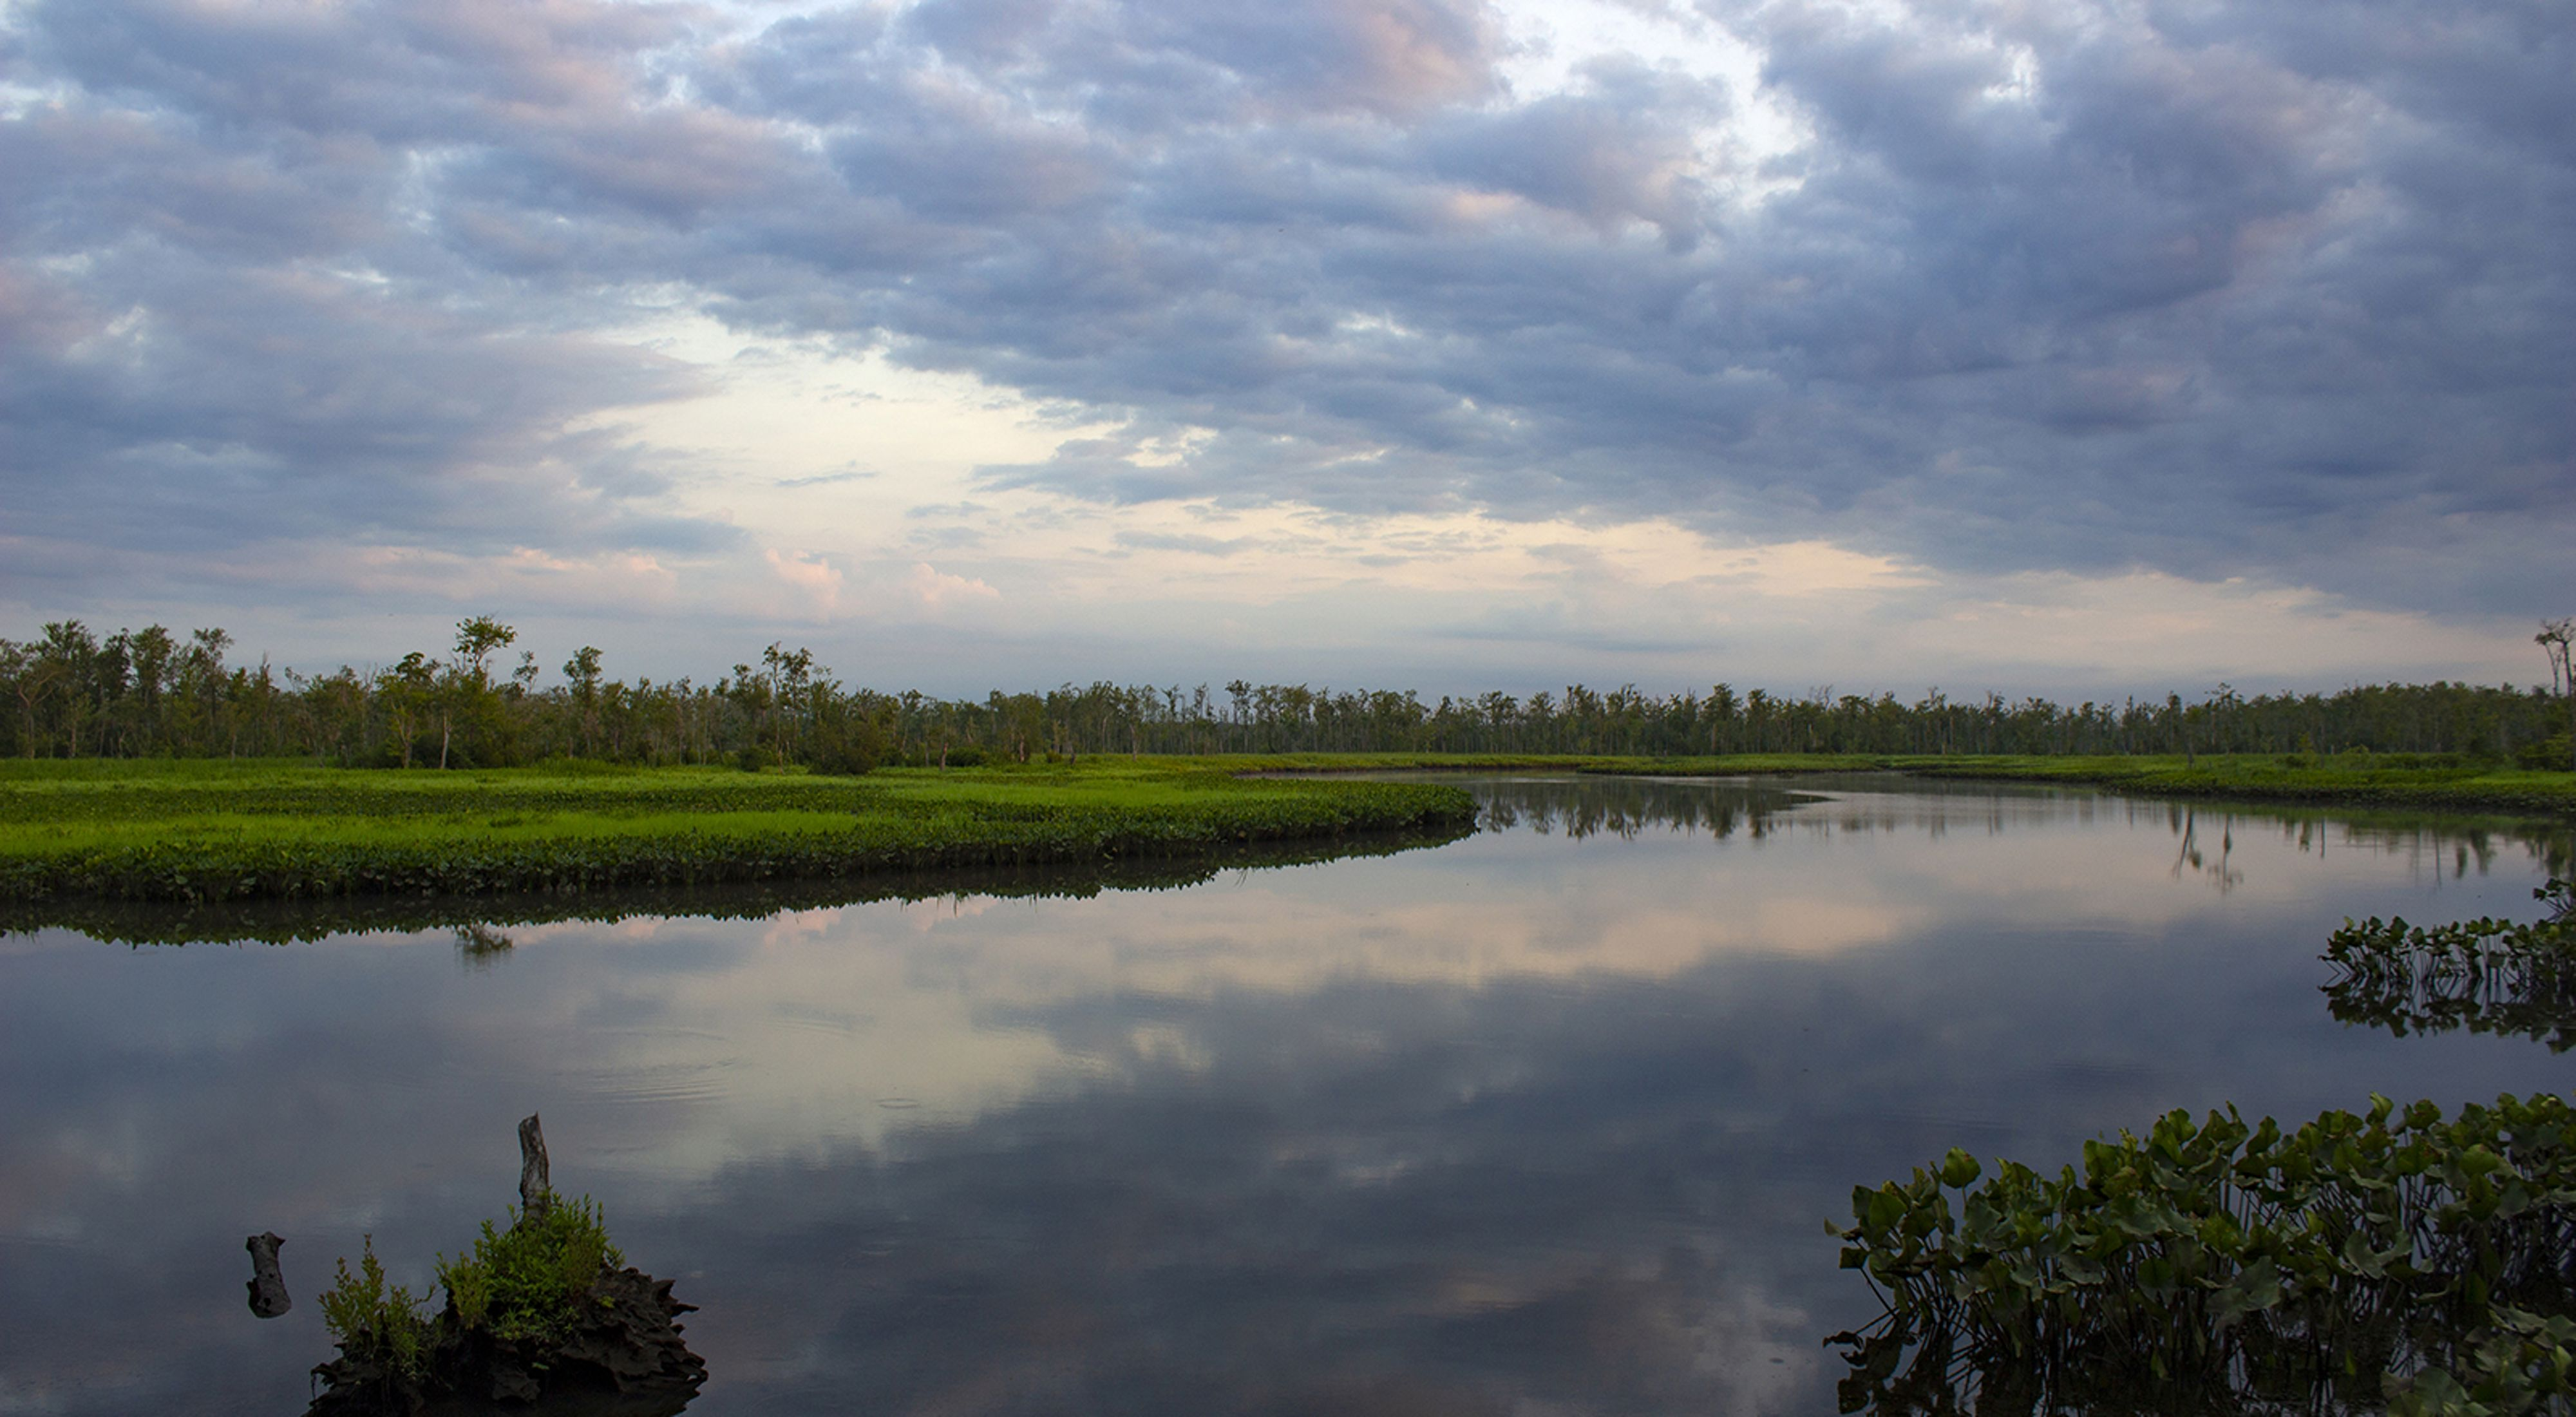 Low morning clouds are reflected in the still water of a creek that winds through green wetlands.